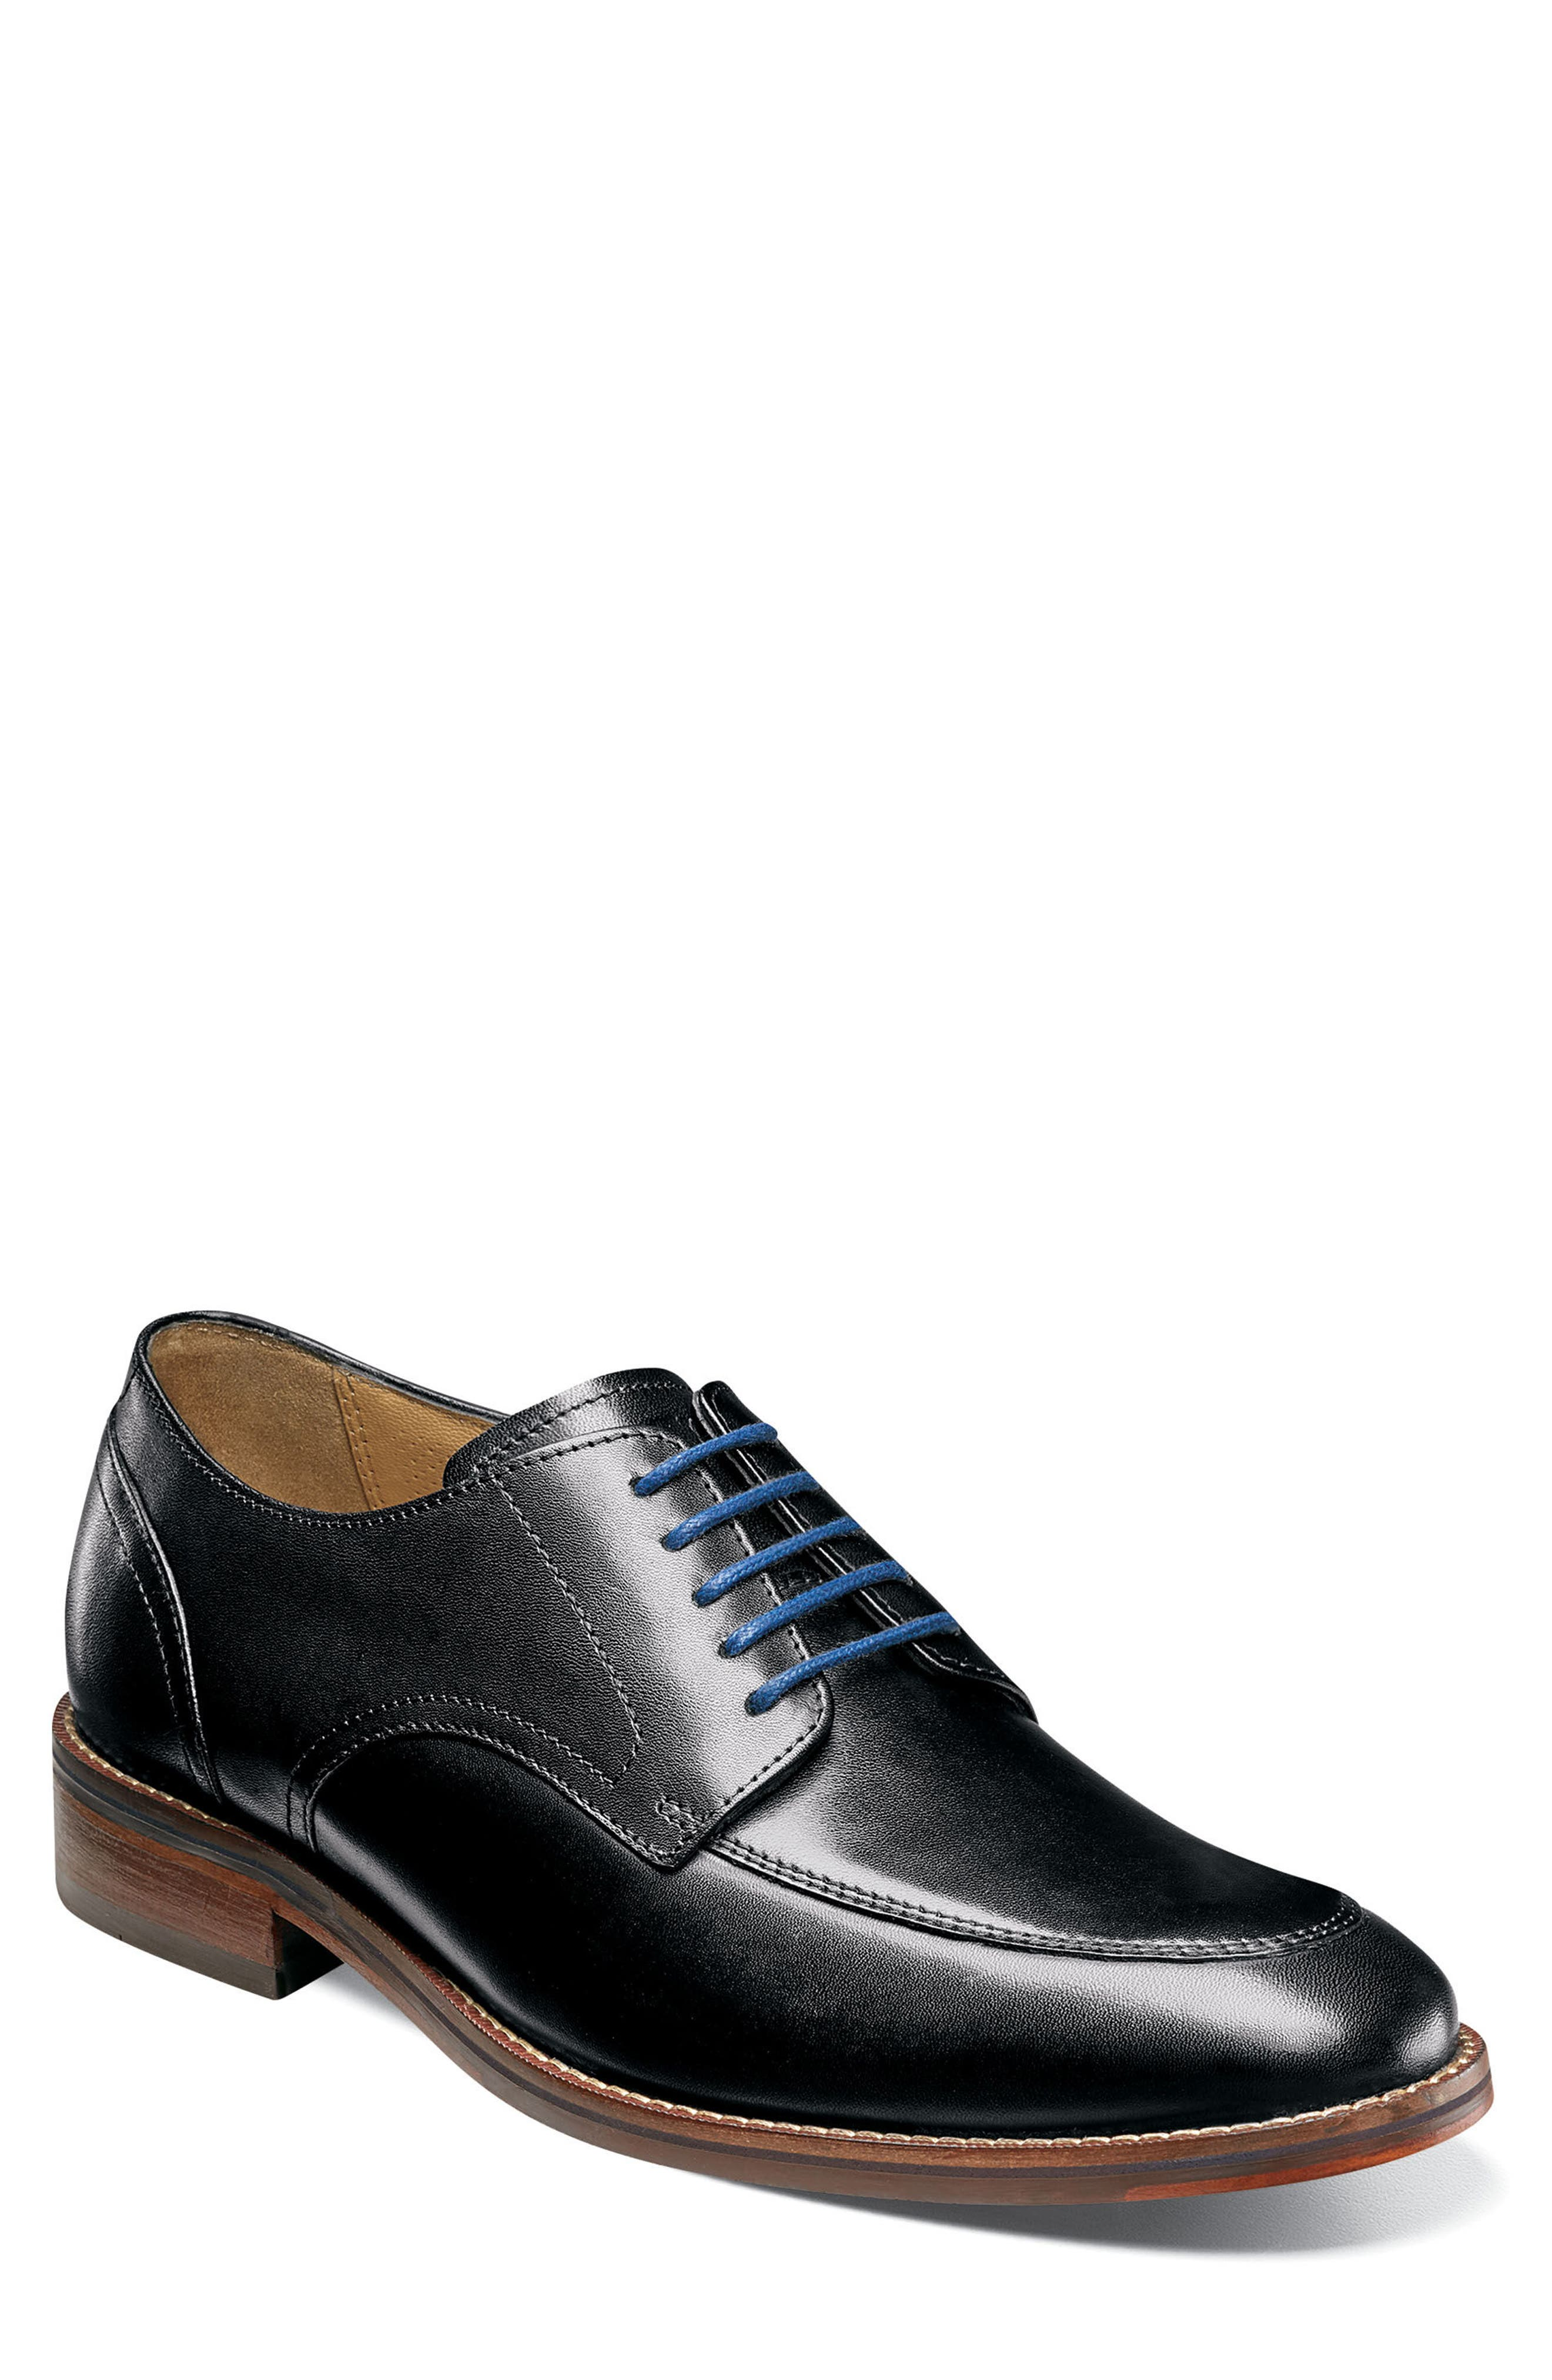 Salerno Apron Toe Derby,                             Main thumbnail 1, color,                             BLACK LEATHER